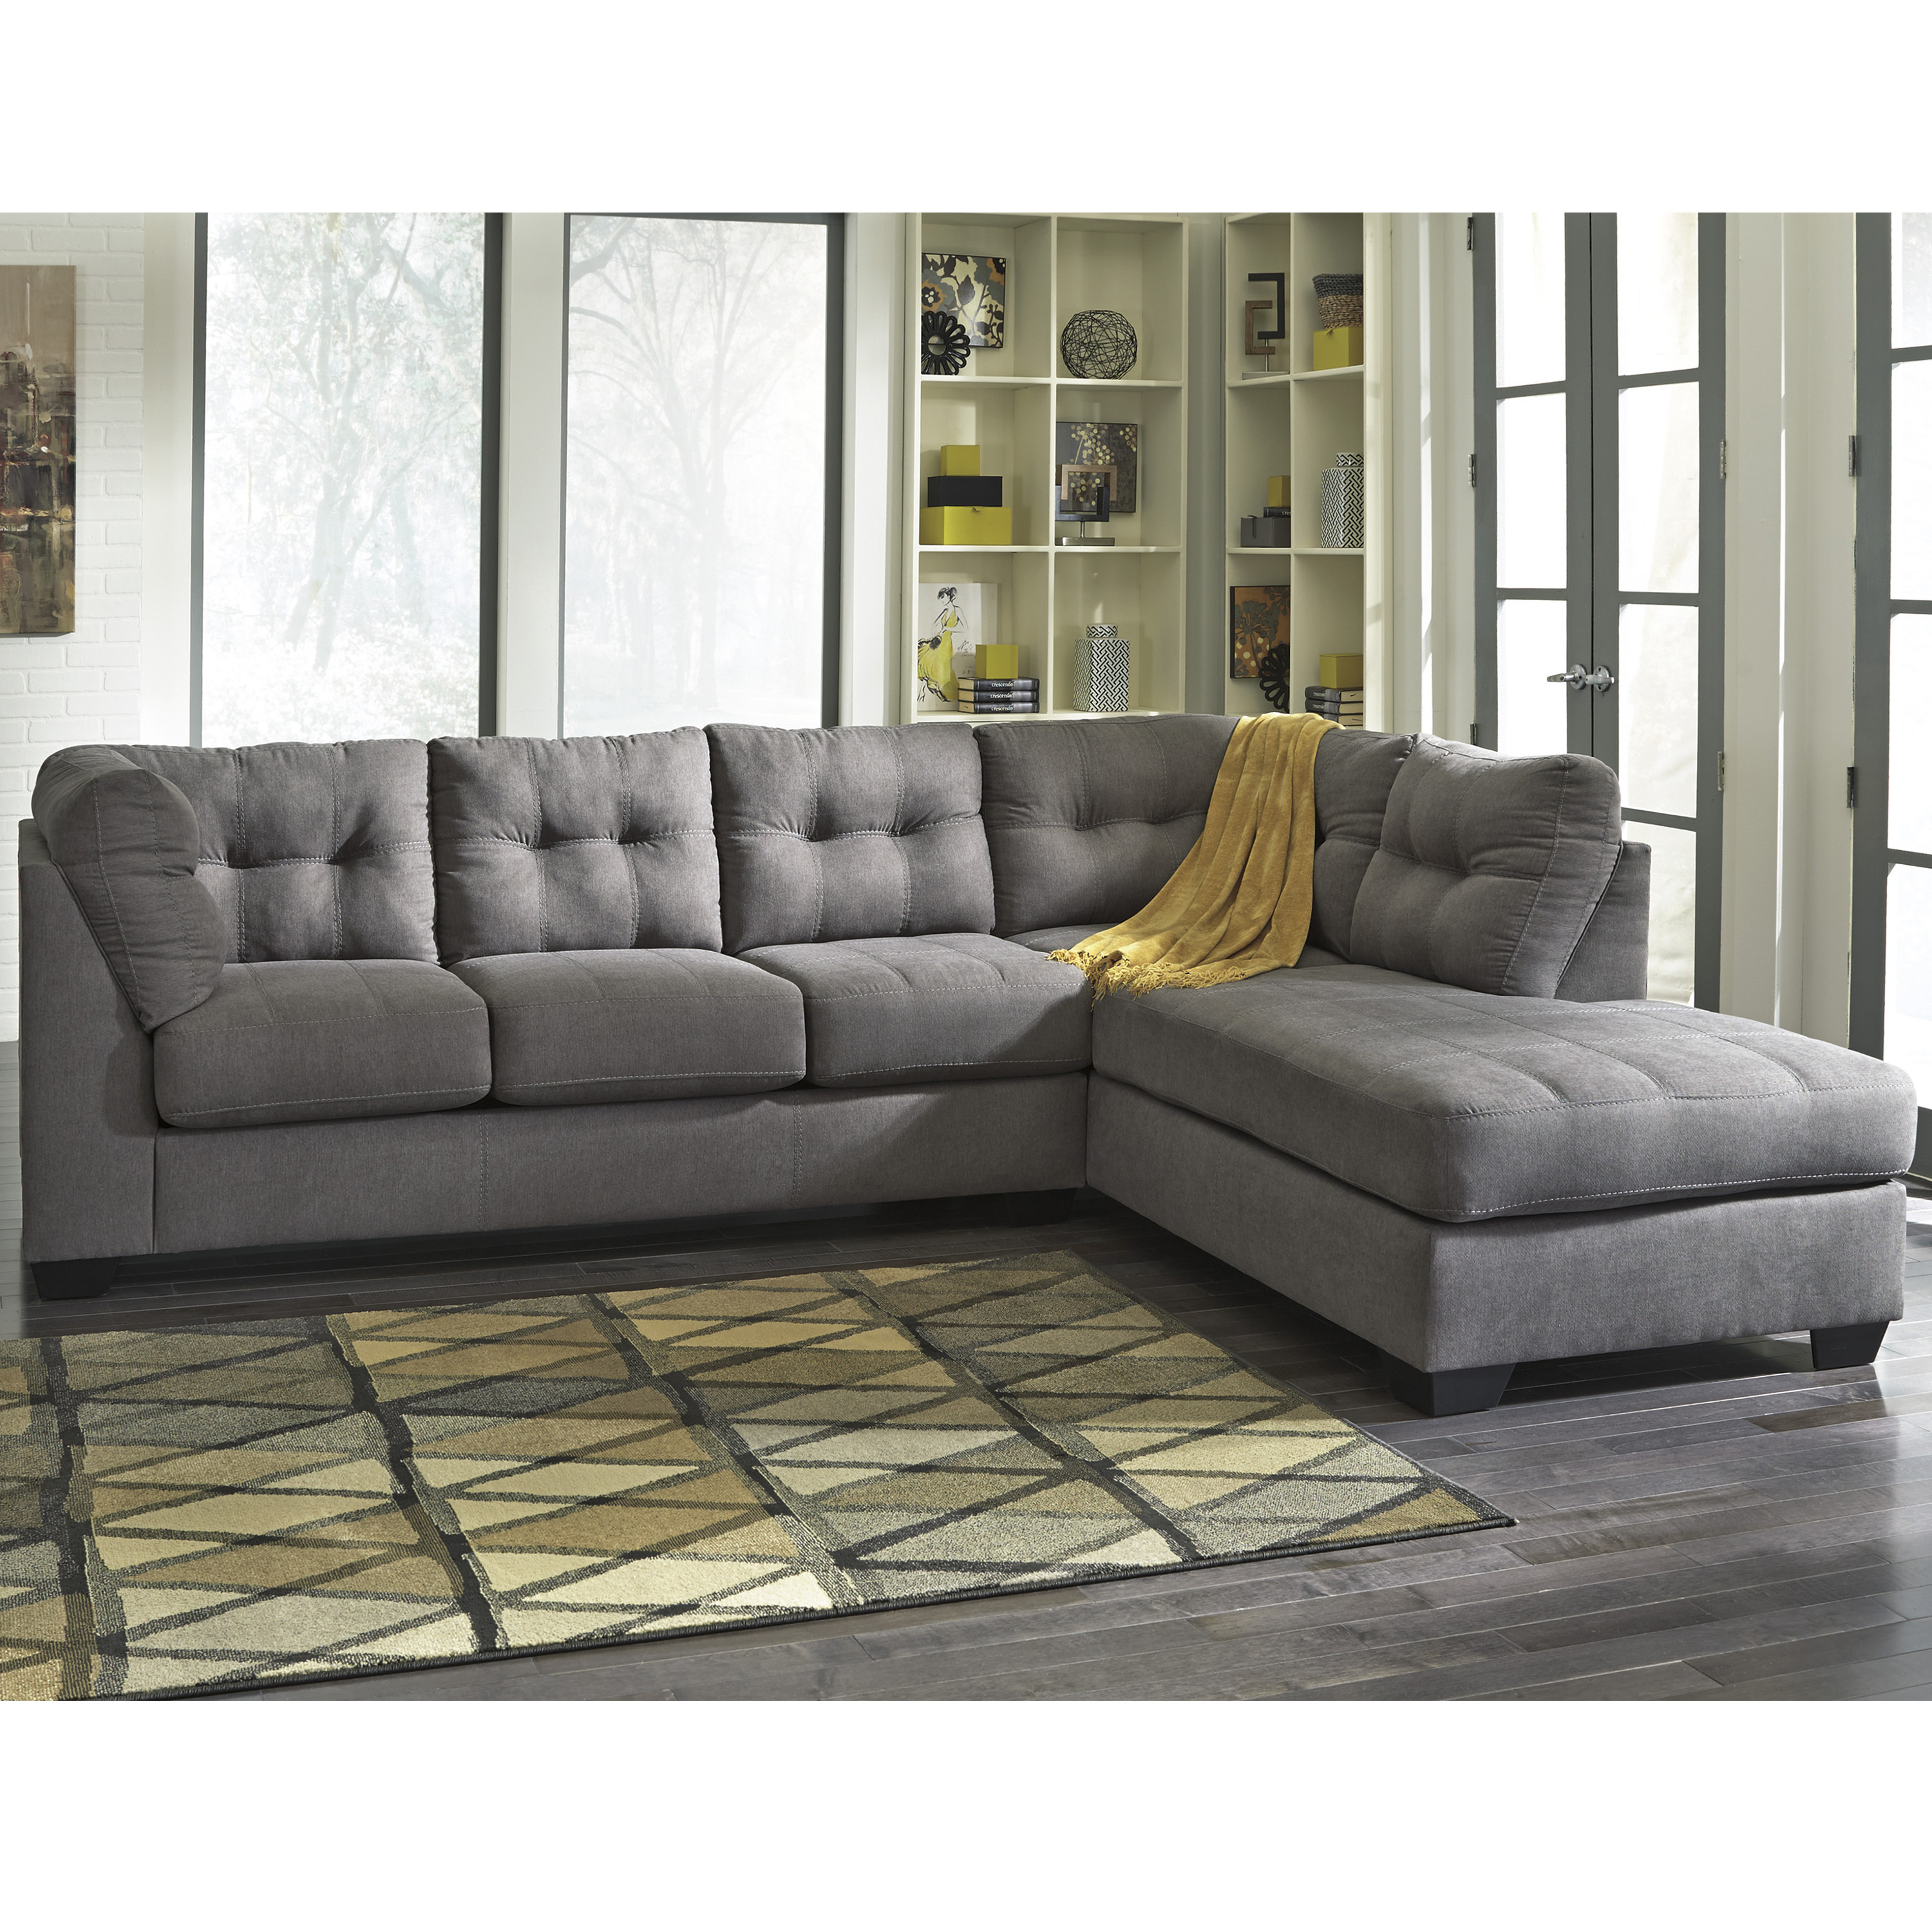 Lucy Dark Grey 2 Piece Sleeper Sectionals With Raf Chaise Within Preferred Furniture: Cool Cheap Sectional For Elegant Living Room Design (Gallery 10 of 20)